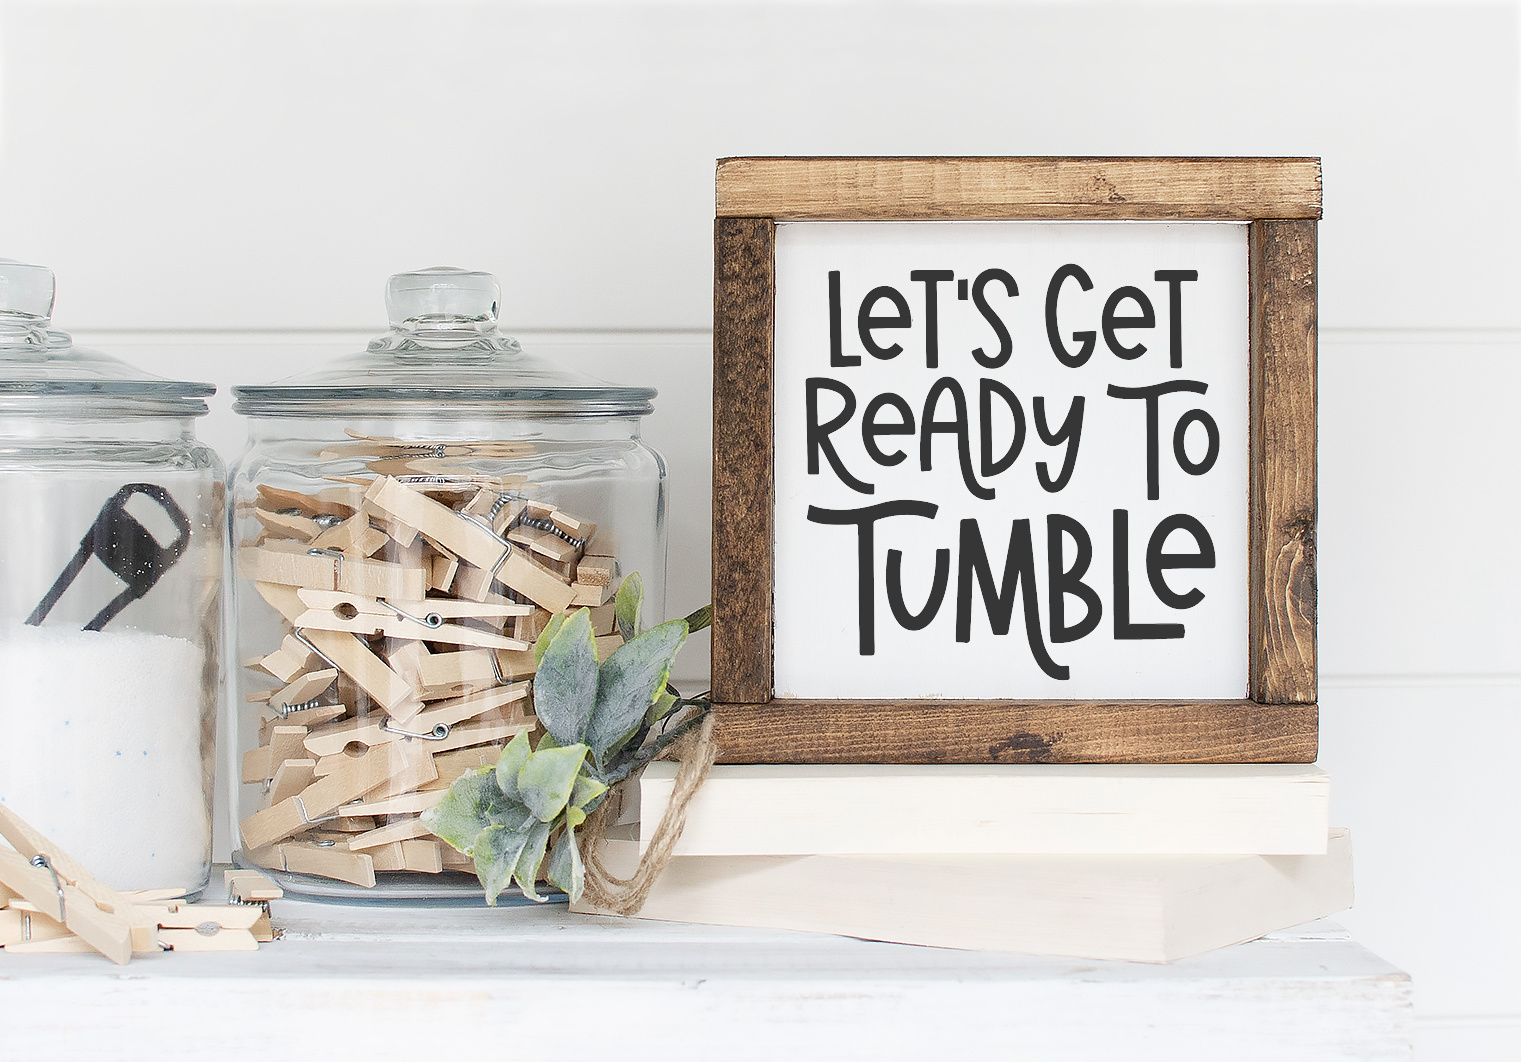 https://www.happygoluckyblog.com/wp-content/uploads/2021/04/Lets-Get-Ready-to-Tumble.jpg